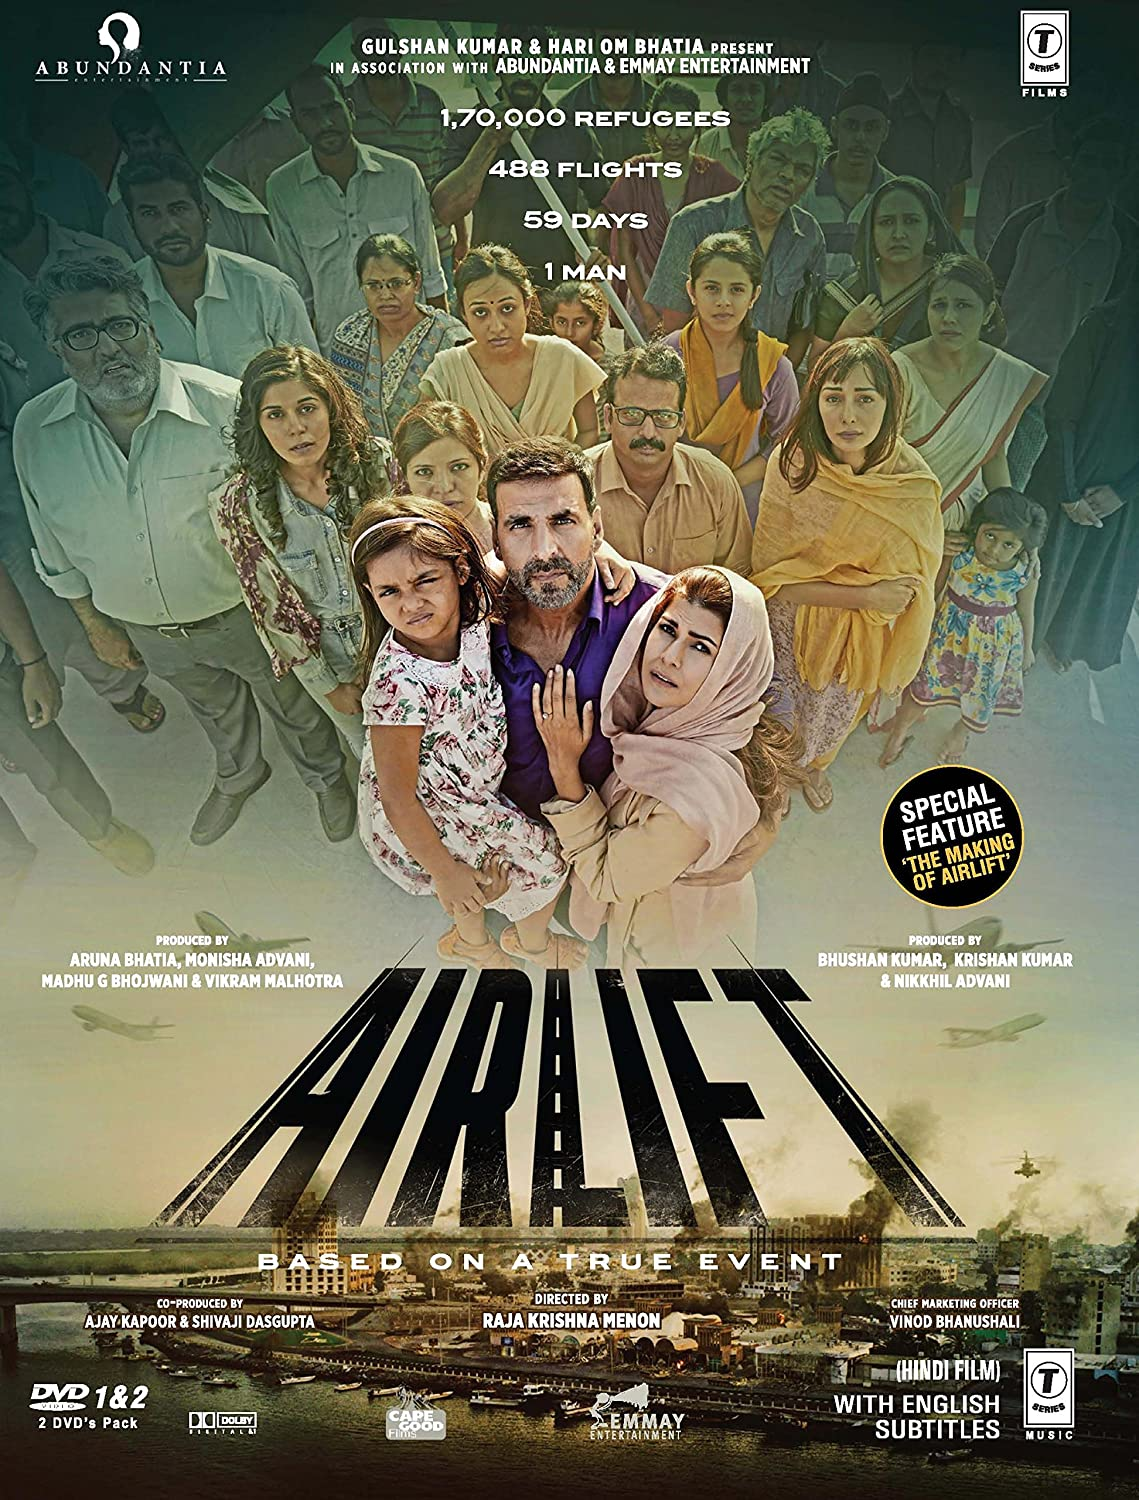 Amazon.com: Airlift - 2016 Hindi Movie DVD / 2-Disc Special ...